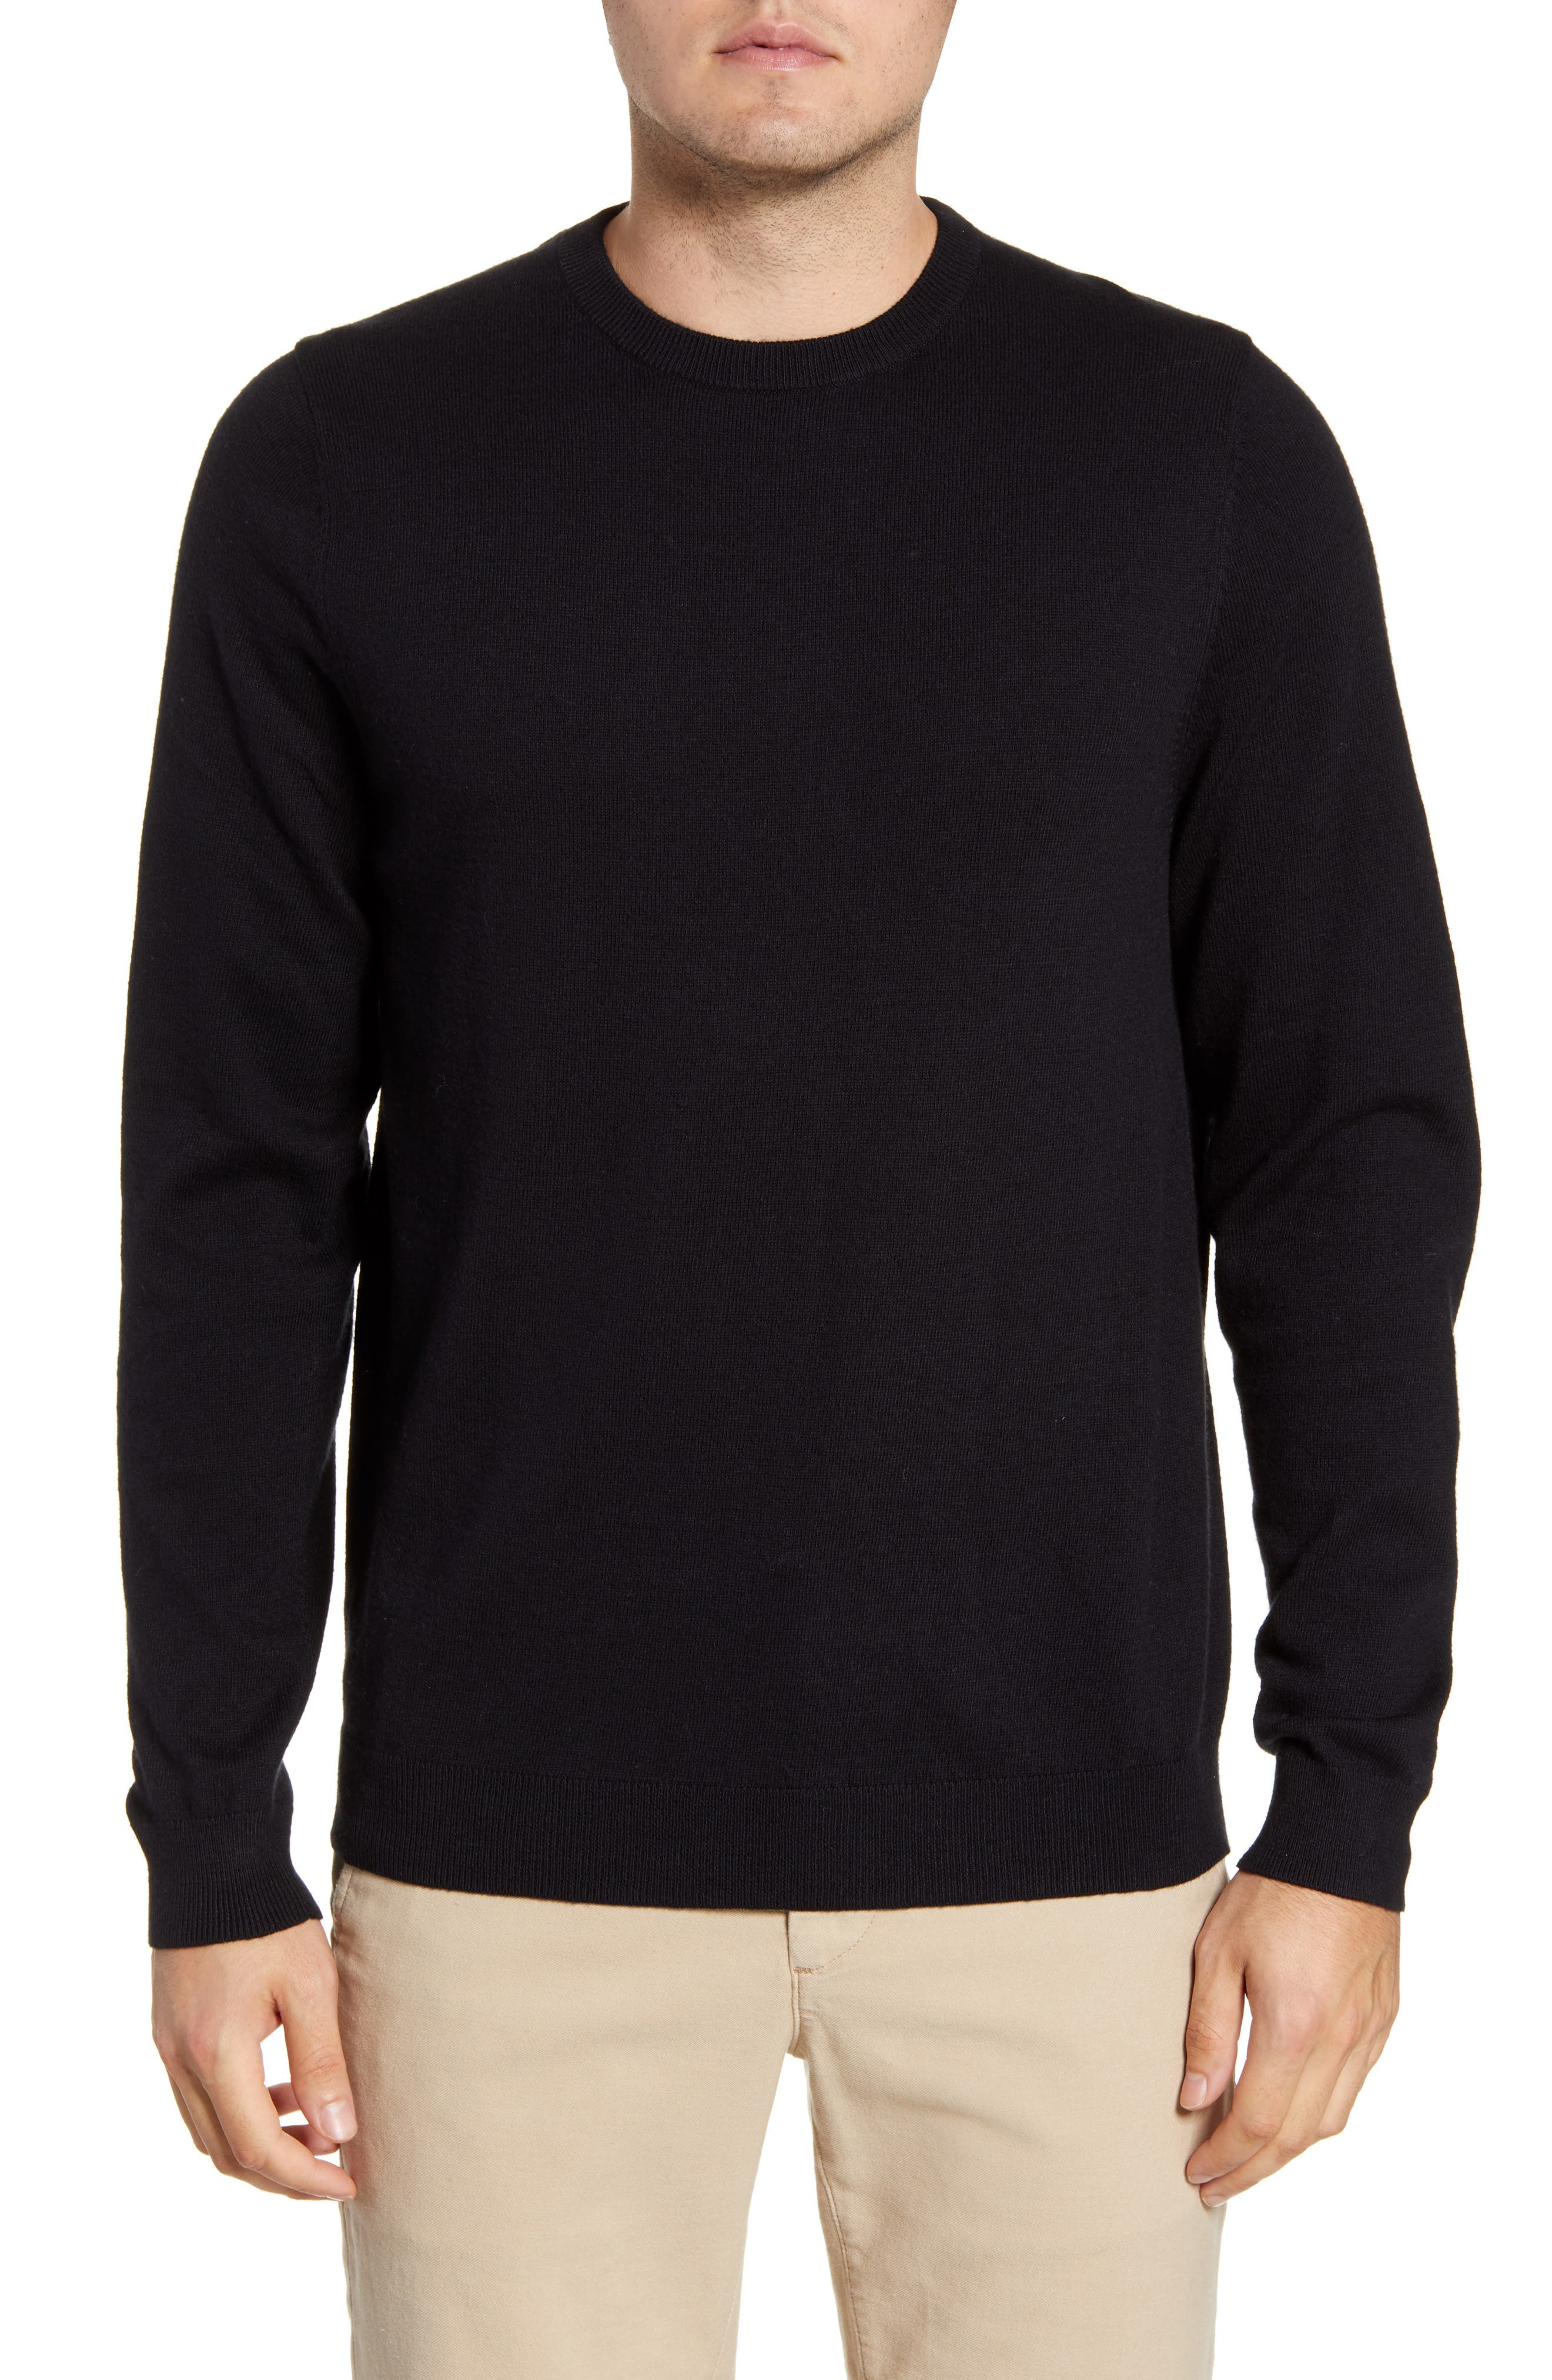 A timeless crewneck sweater is knit from cashmere-softened cotton for enhanced warmth and softness. Style Name: Nordstrom Men\\\'s Shop Cotton & Cashmere Crewneck Sweater. Style Number: 826183. Available in stores.